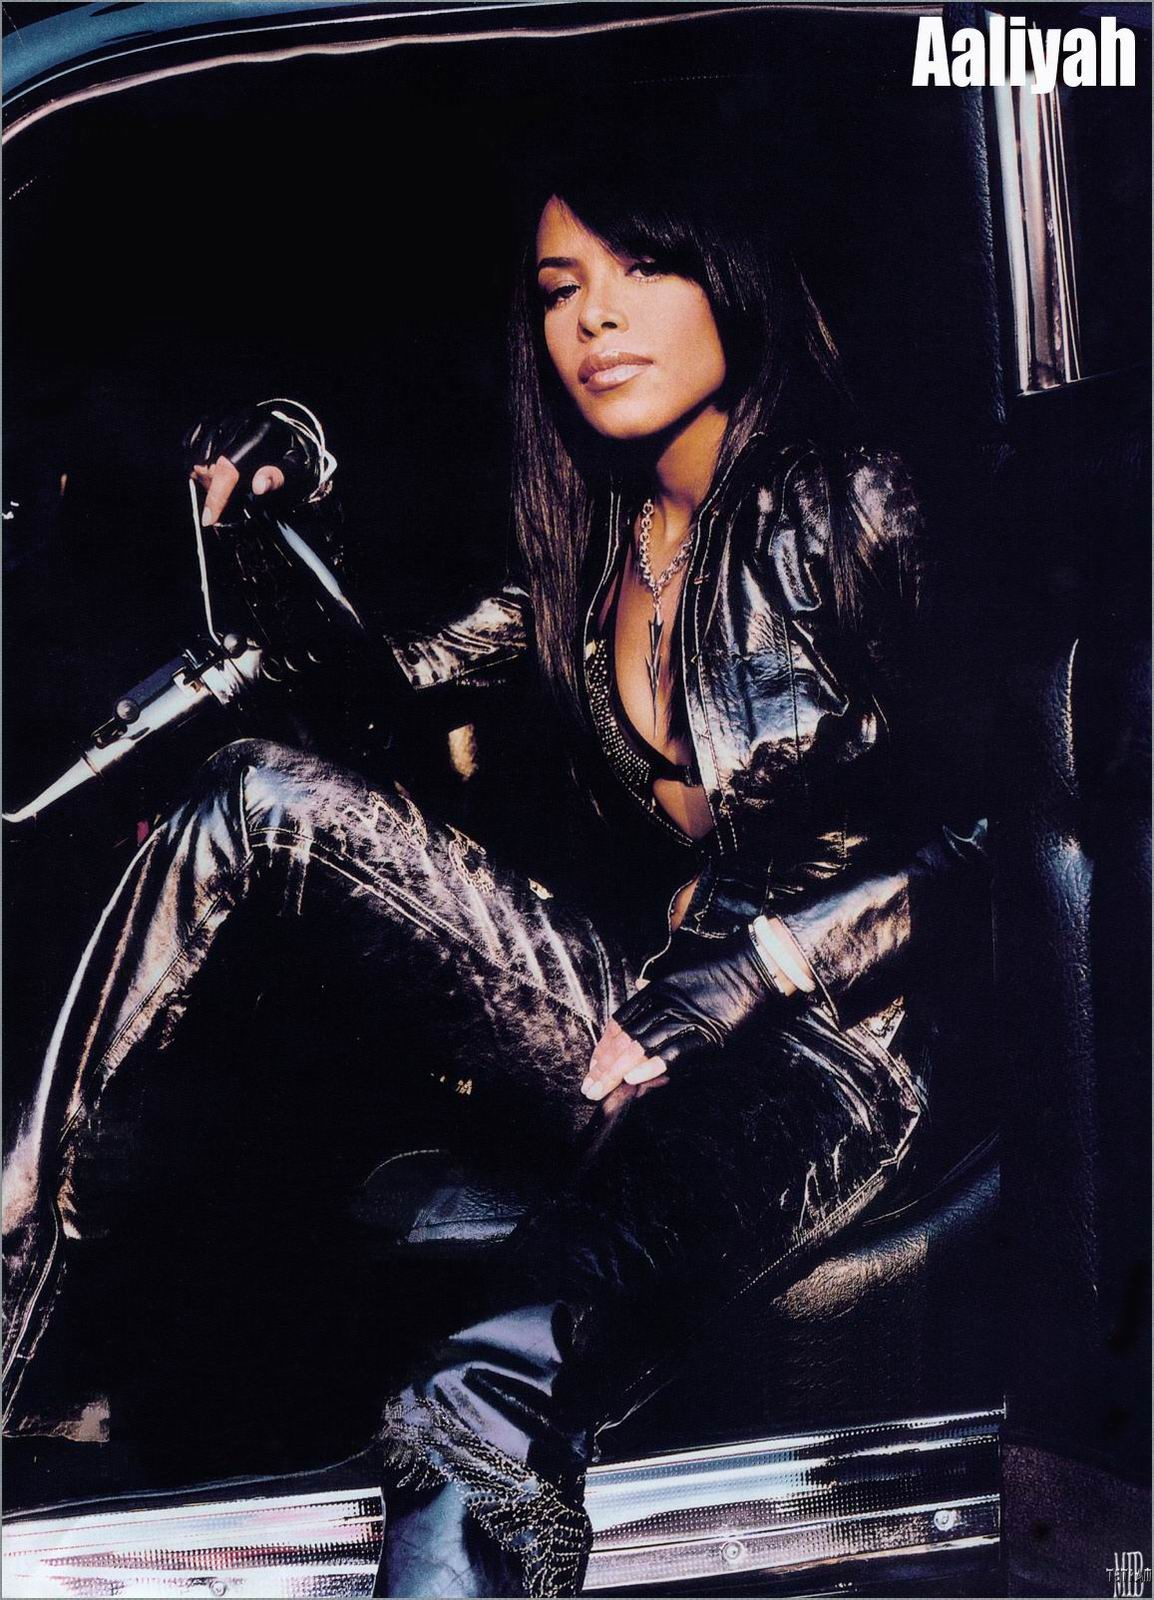 aaliyah wallpapers 9 best aaliyah pictures